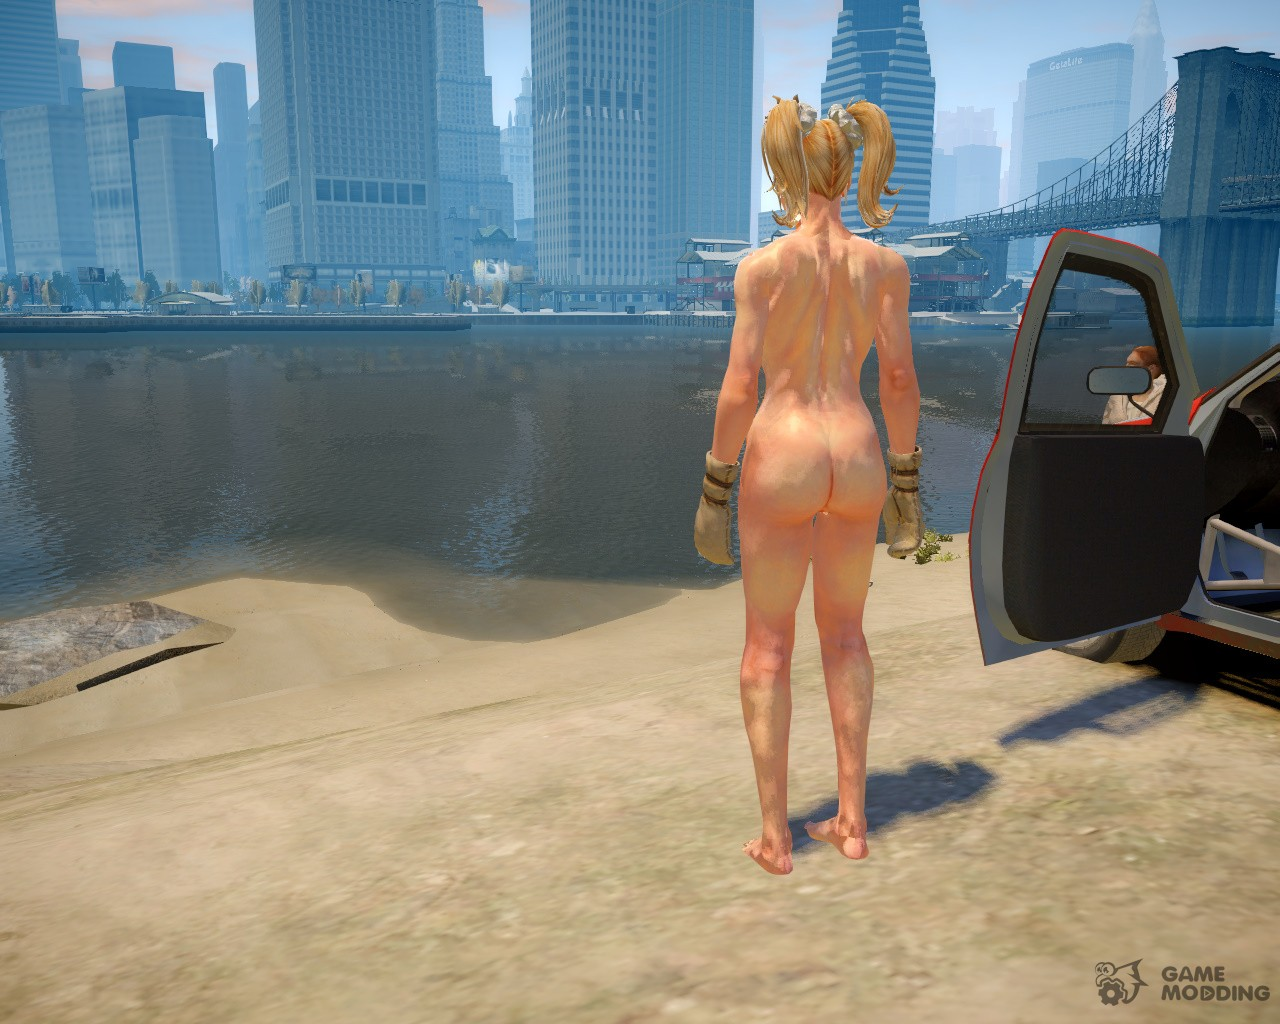 Gta iv mod hentai exposed gallery